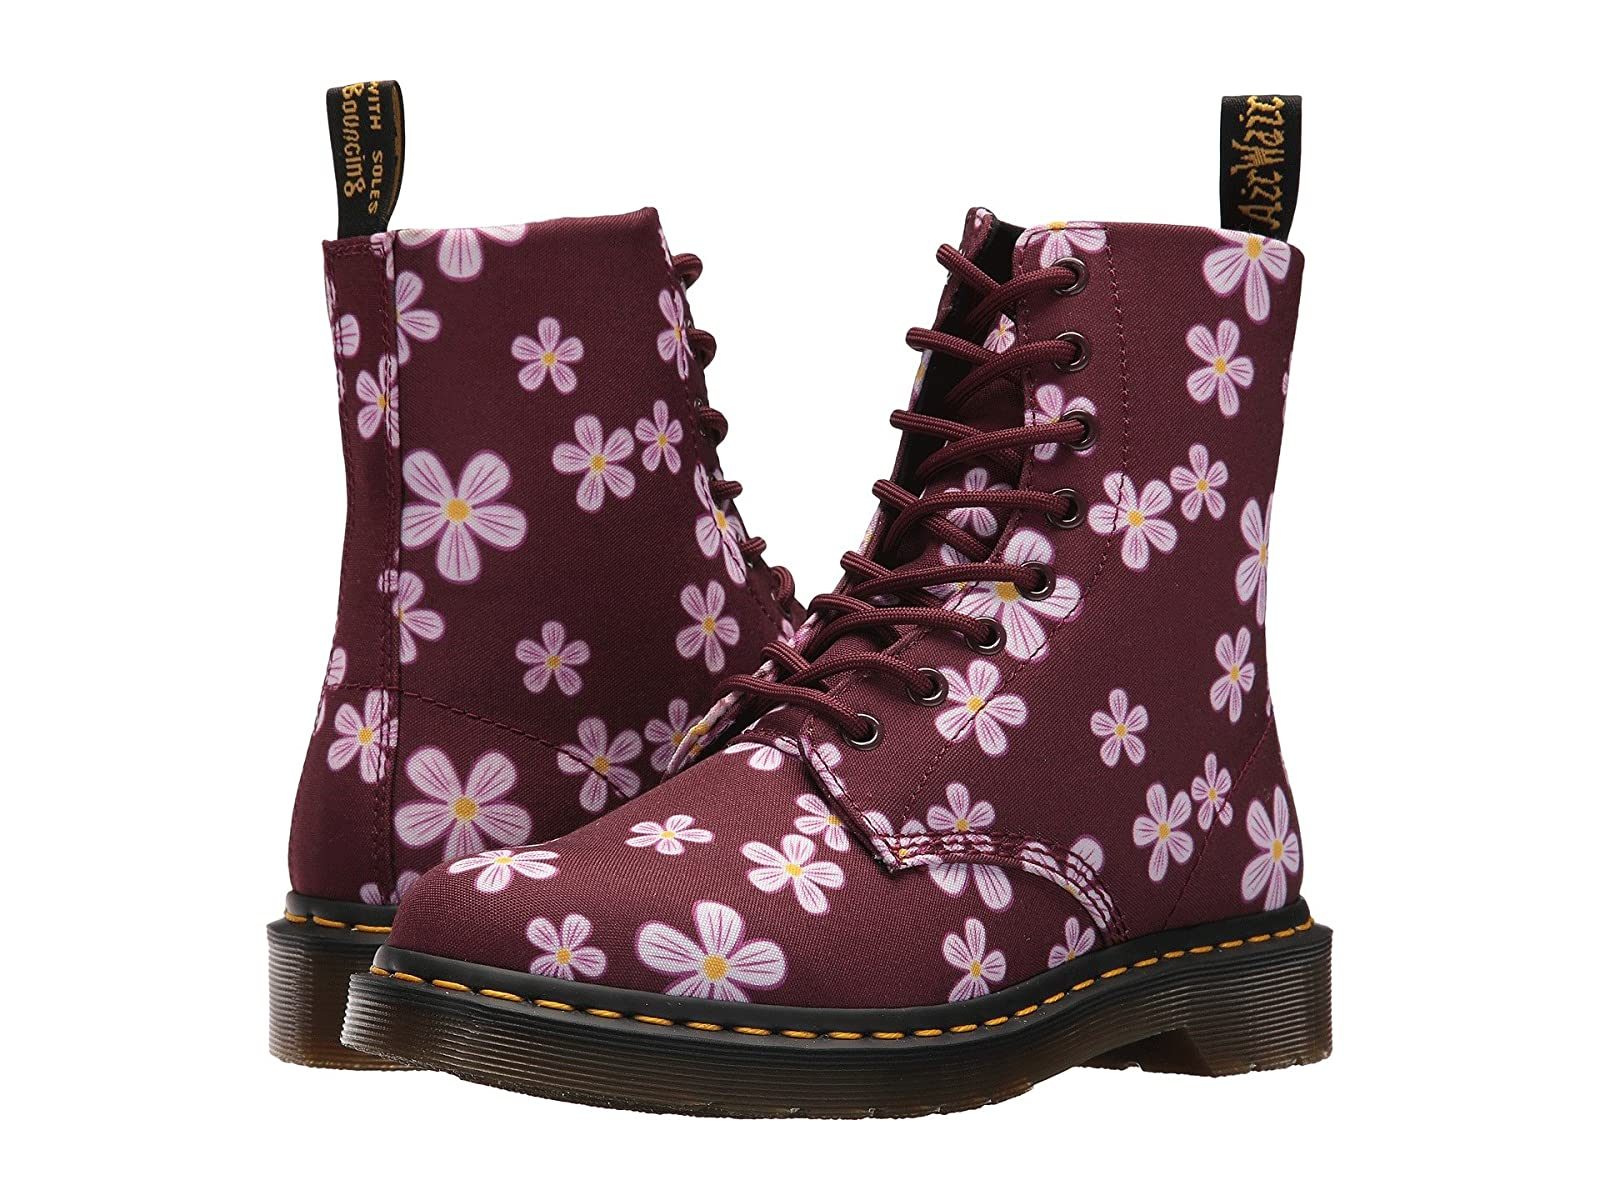 Dr. Martens Page Meadow 8-Eye BootCheap and distinctive eye-catching shoes